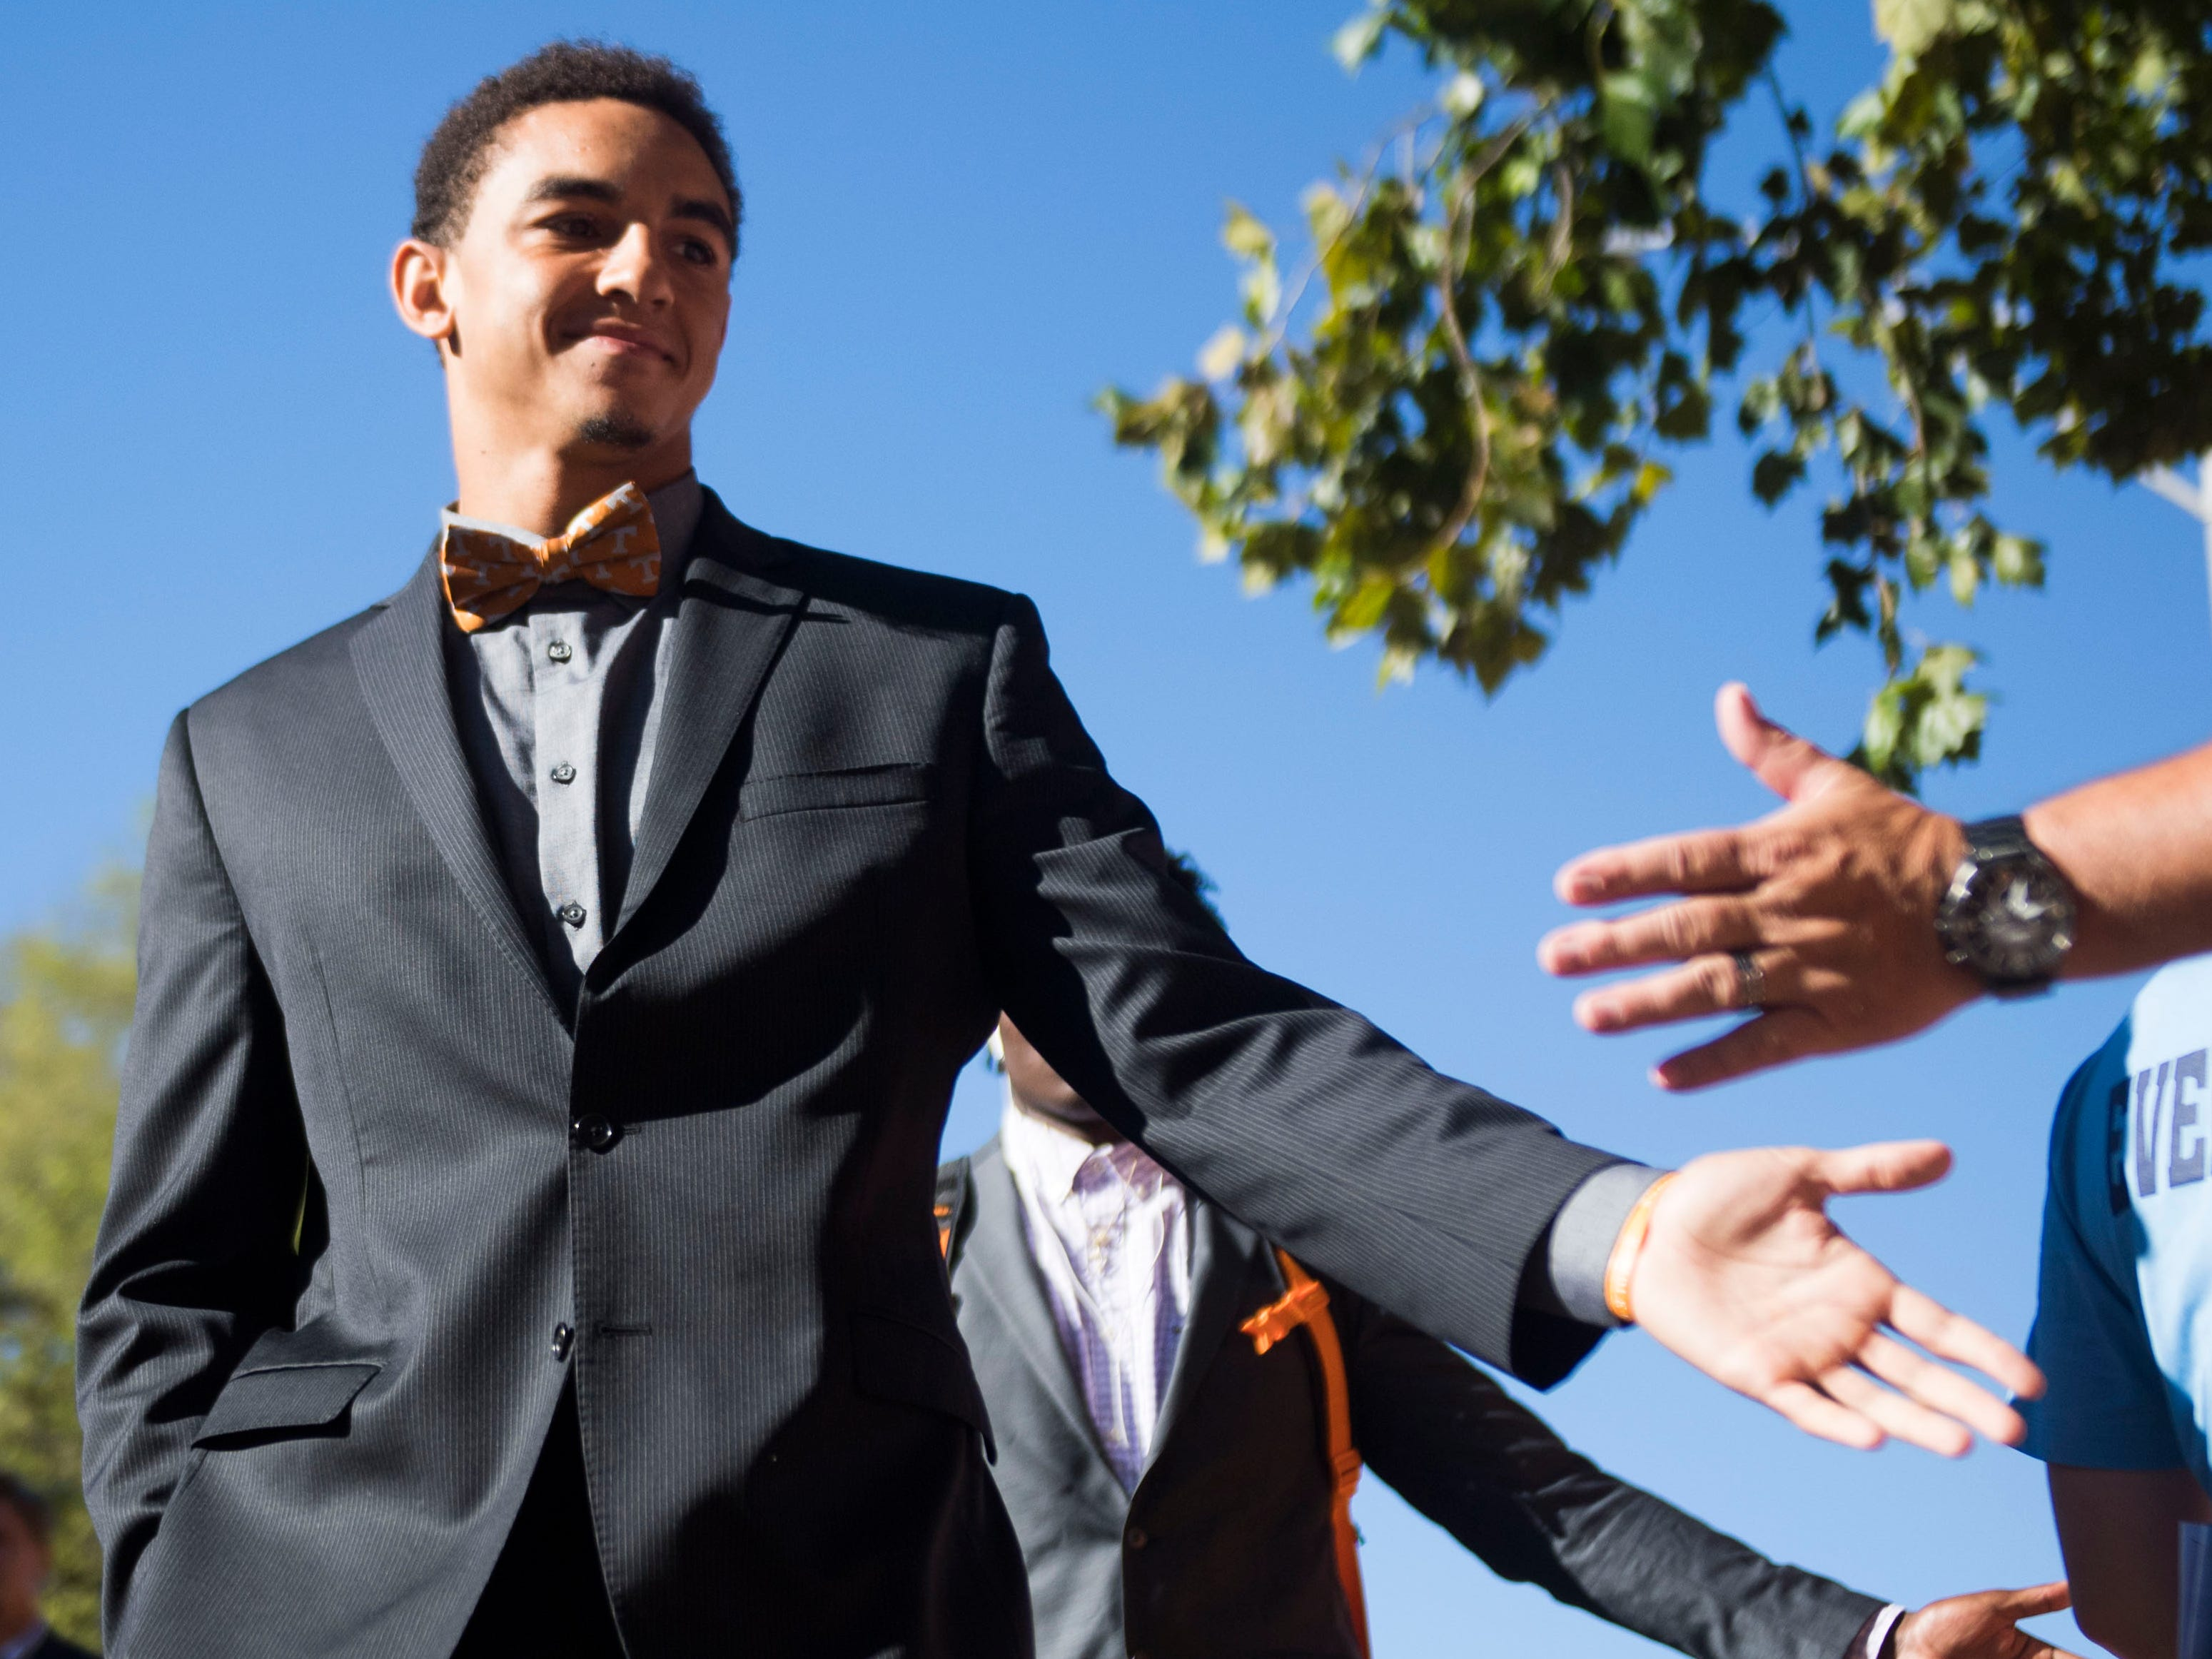 Tennessee quarterback Jarrett Guarantano (2) walks in the Vol Walk to begin outside Neyland Stadium before a game between University of Tennessee and the University of Texas at El Paso Saturday, Sept. 15, 2018.